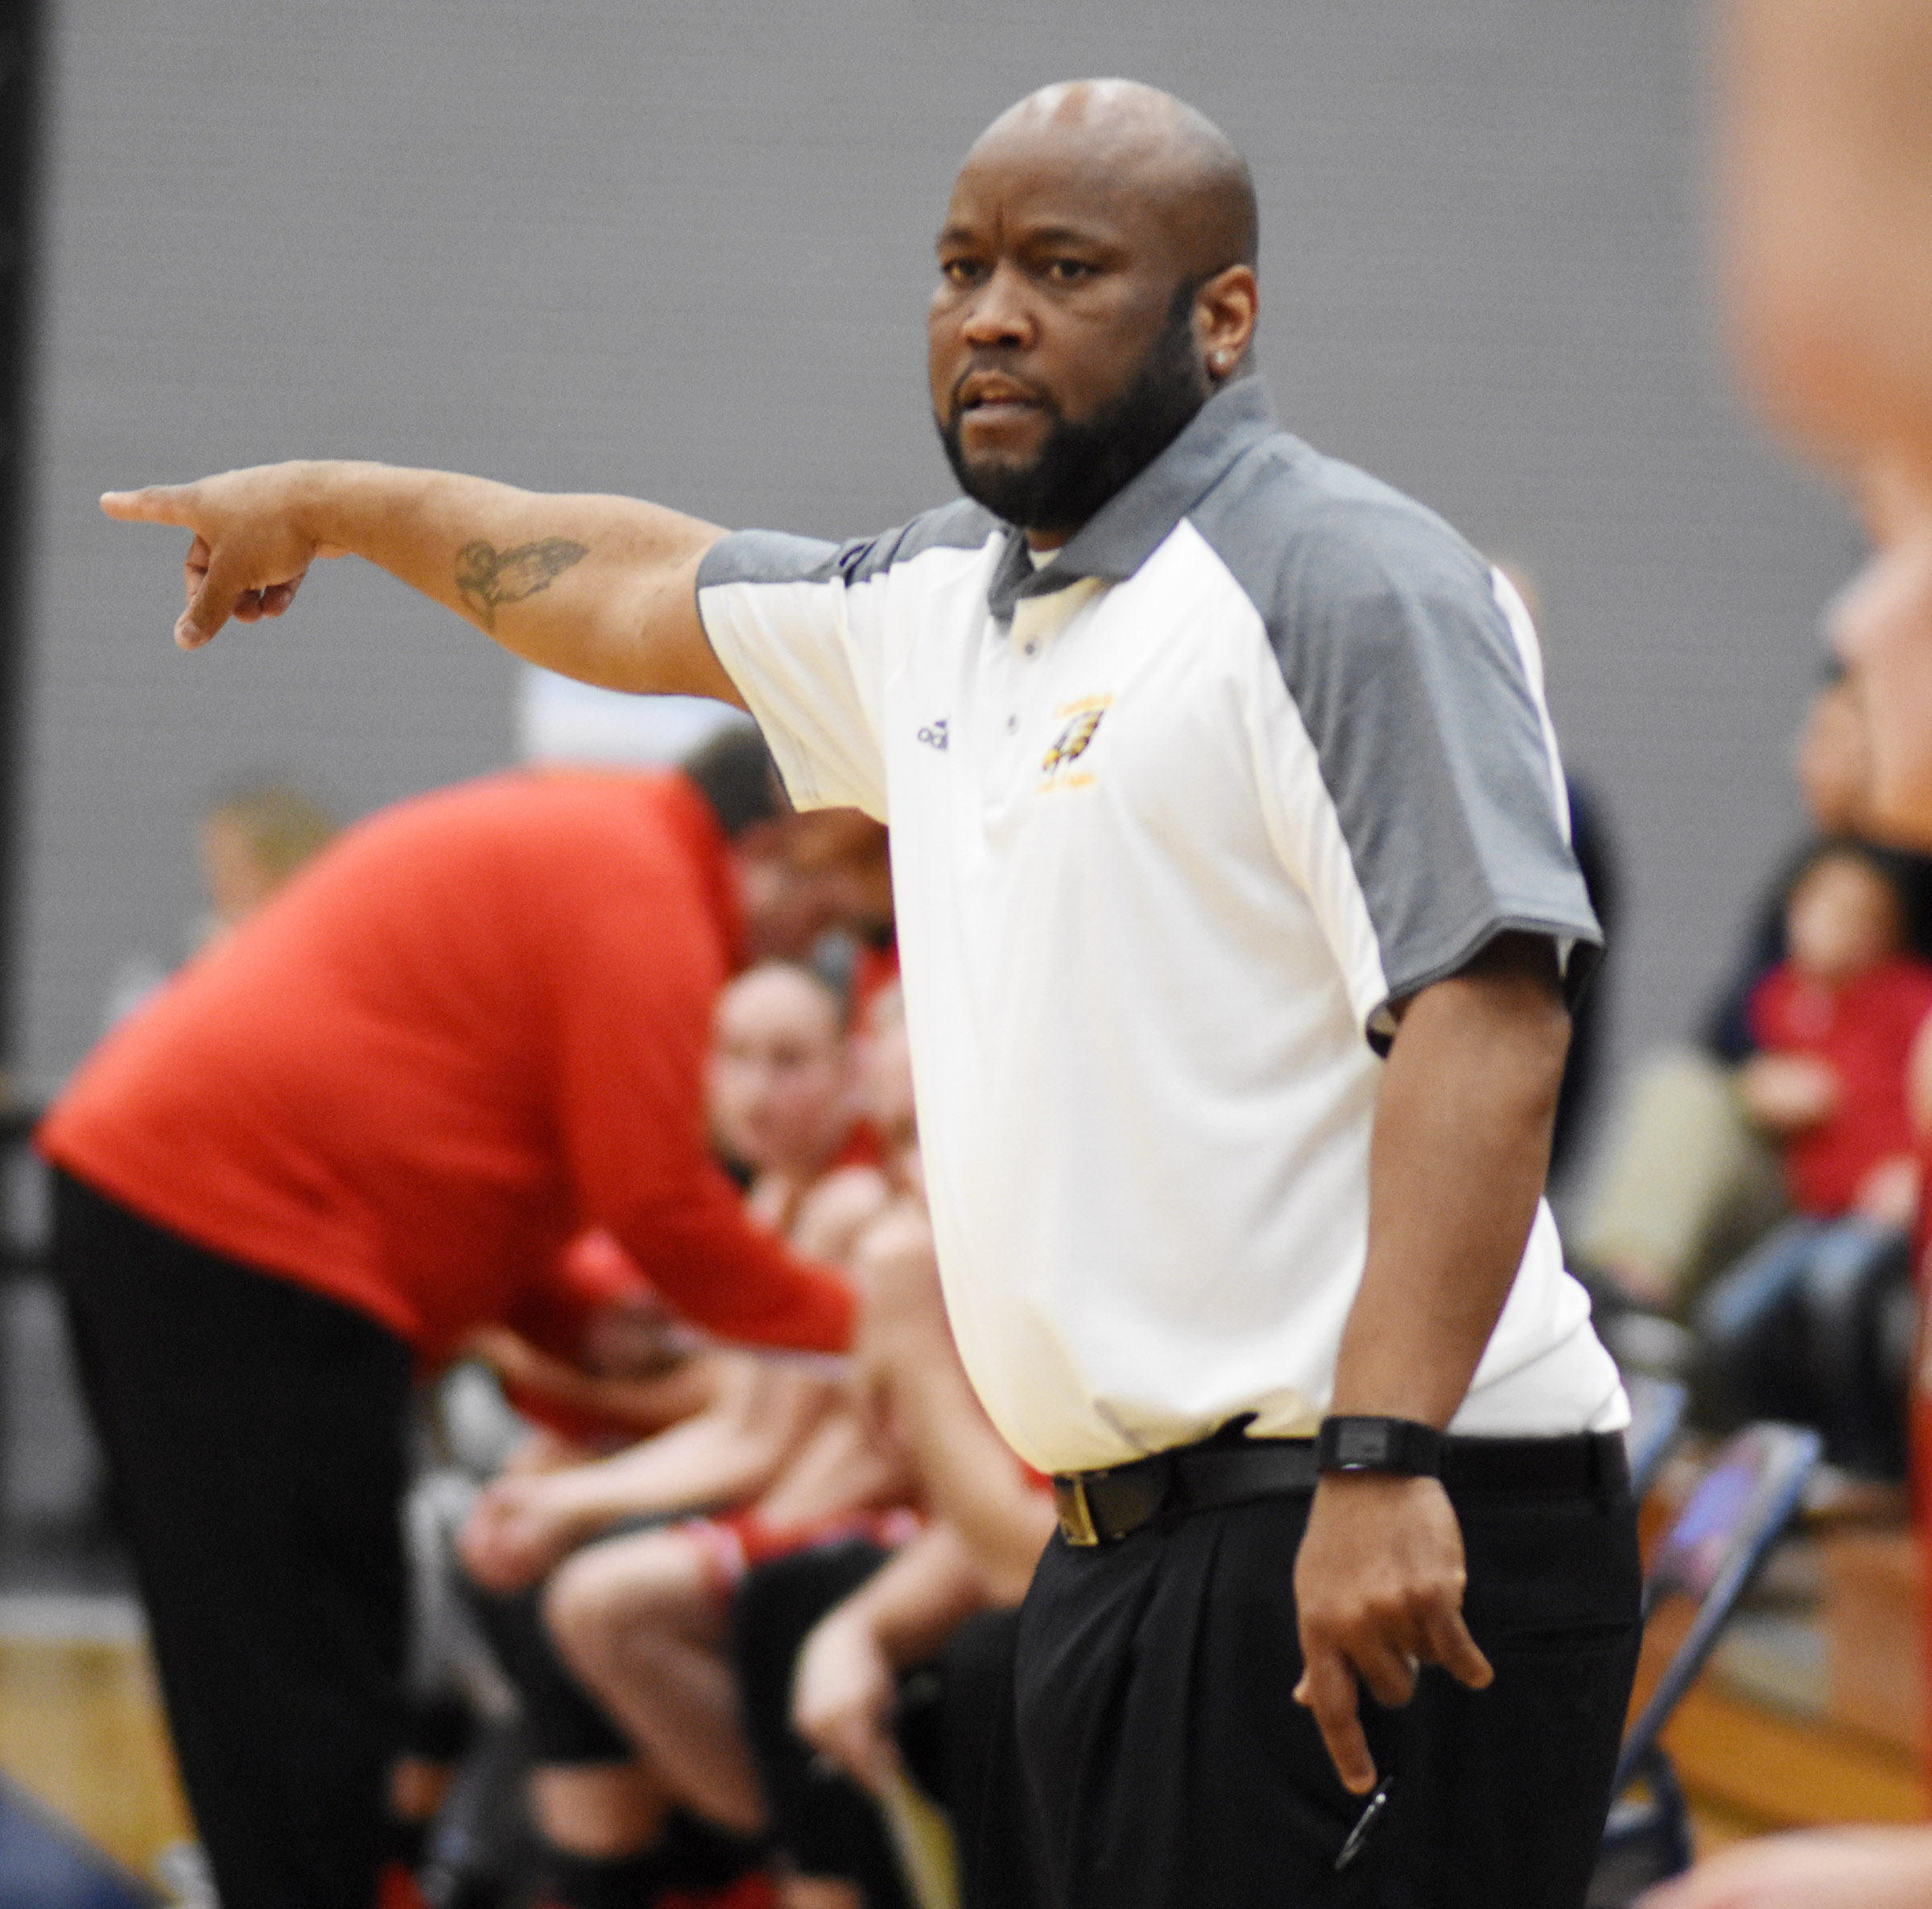 CHS girls' basketball head coach Anthony Epps calls a play.